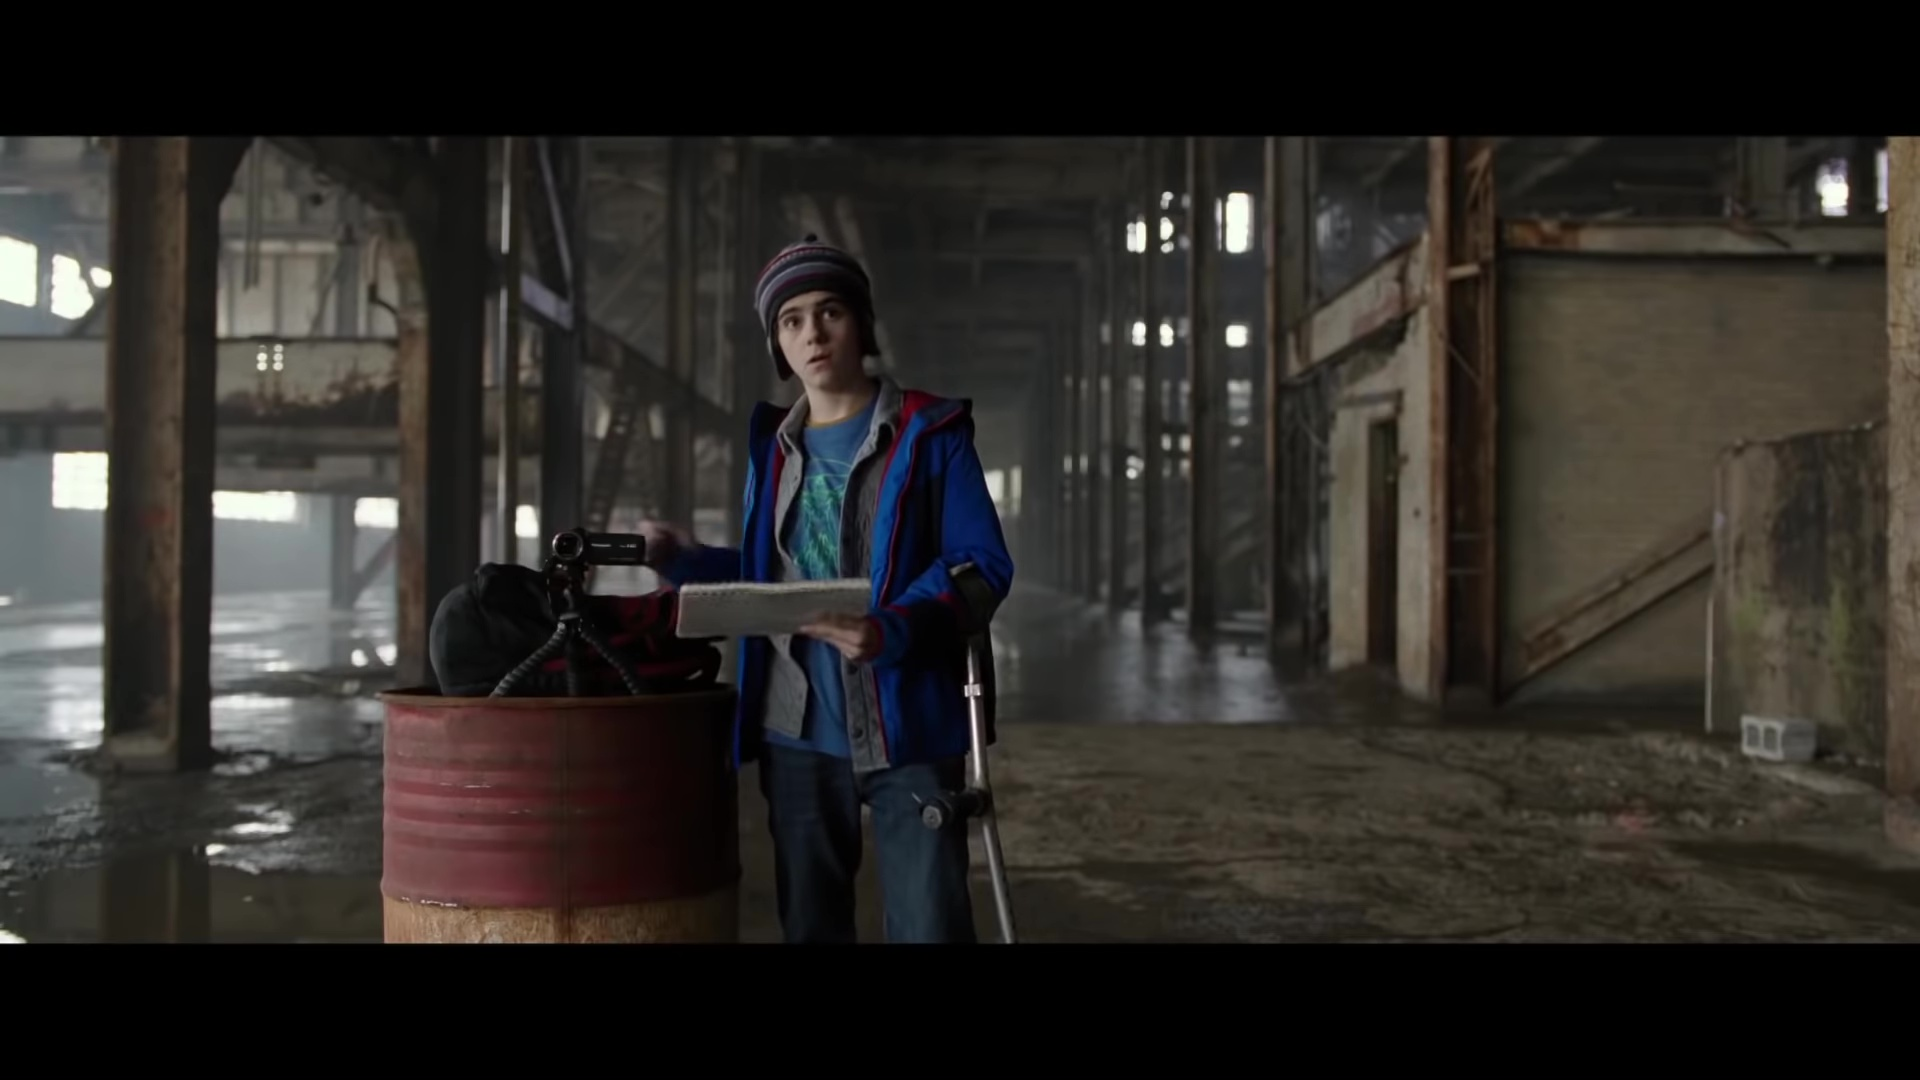 Panasonic Camcorder Used By Jack Dylan Grazer In Shazam